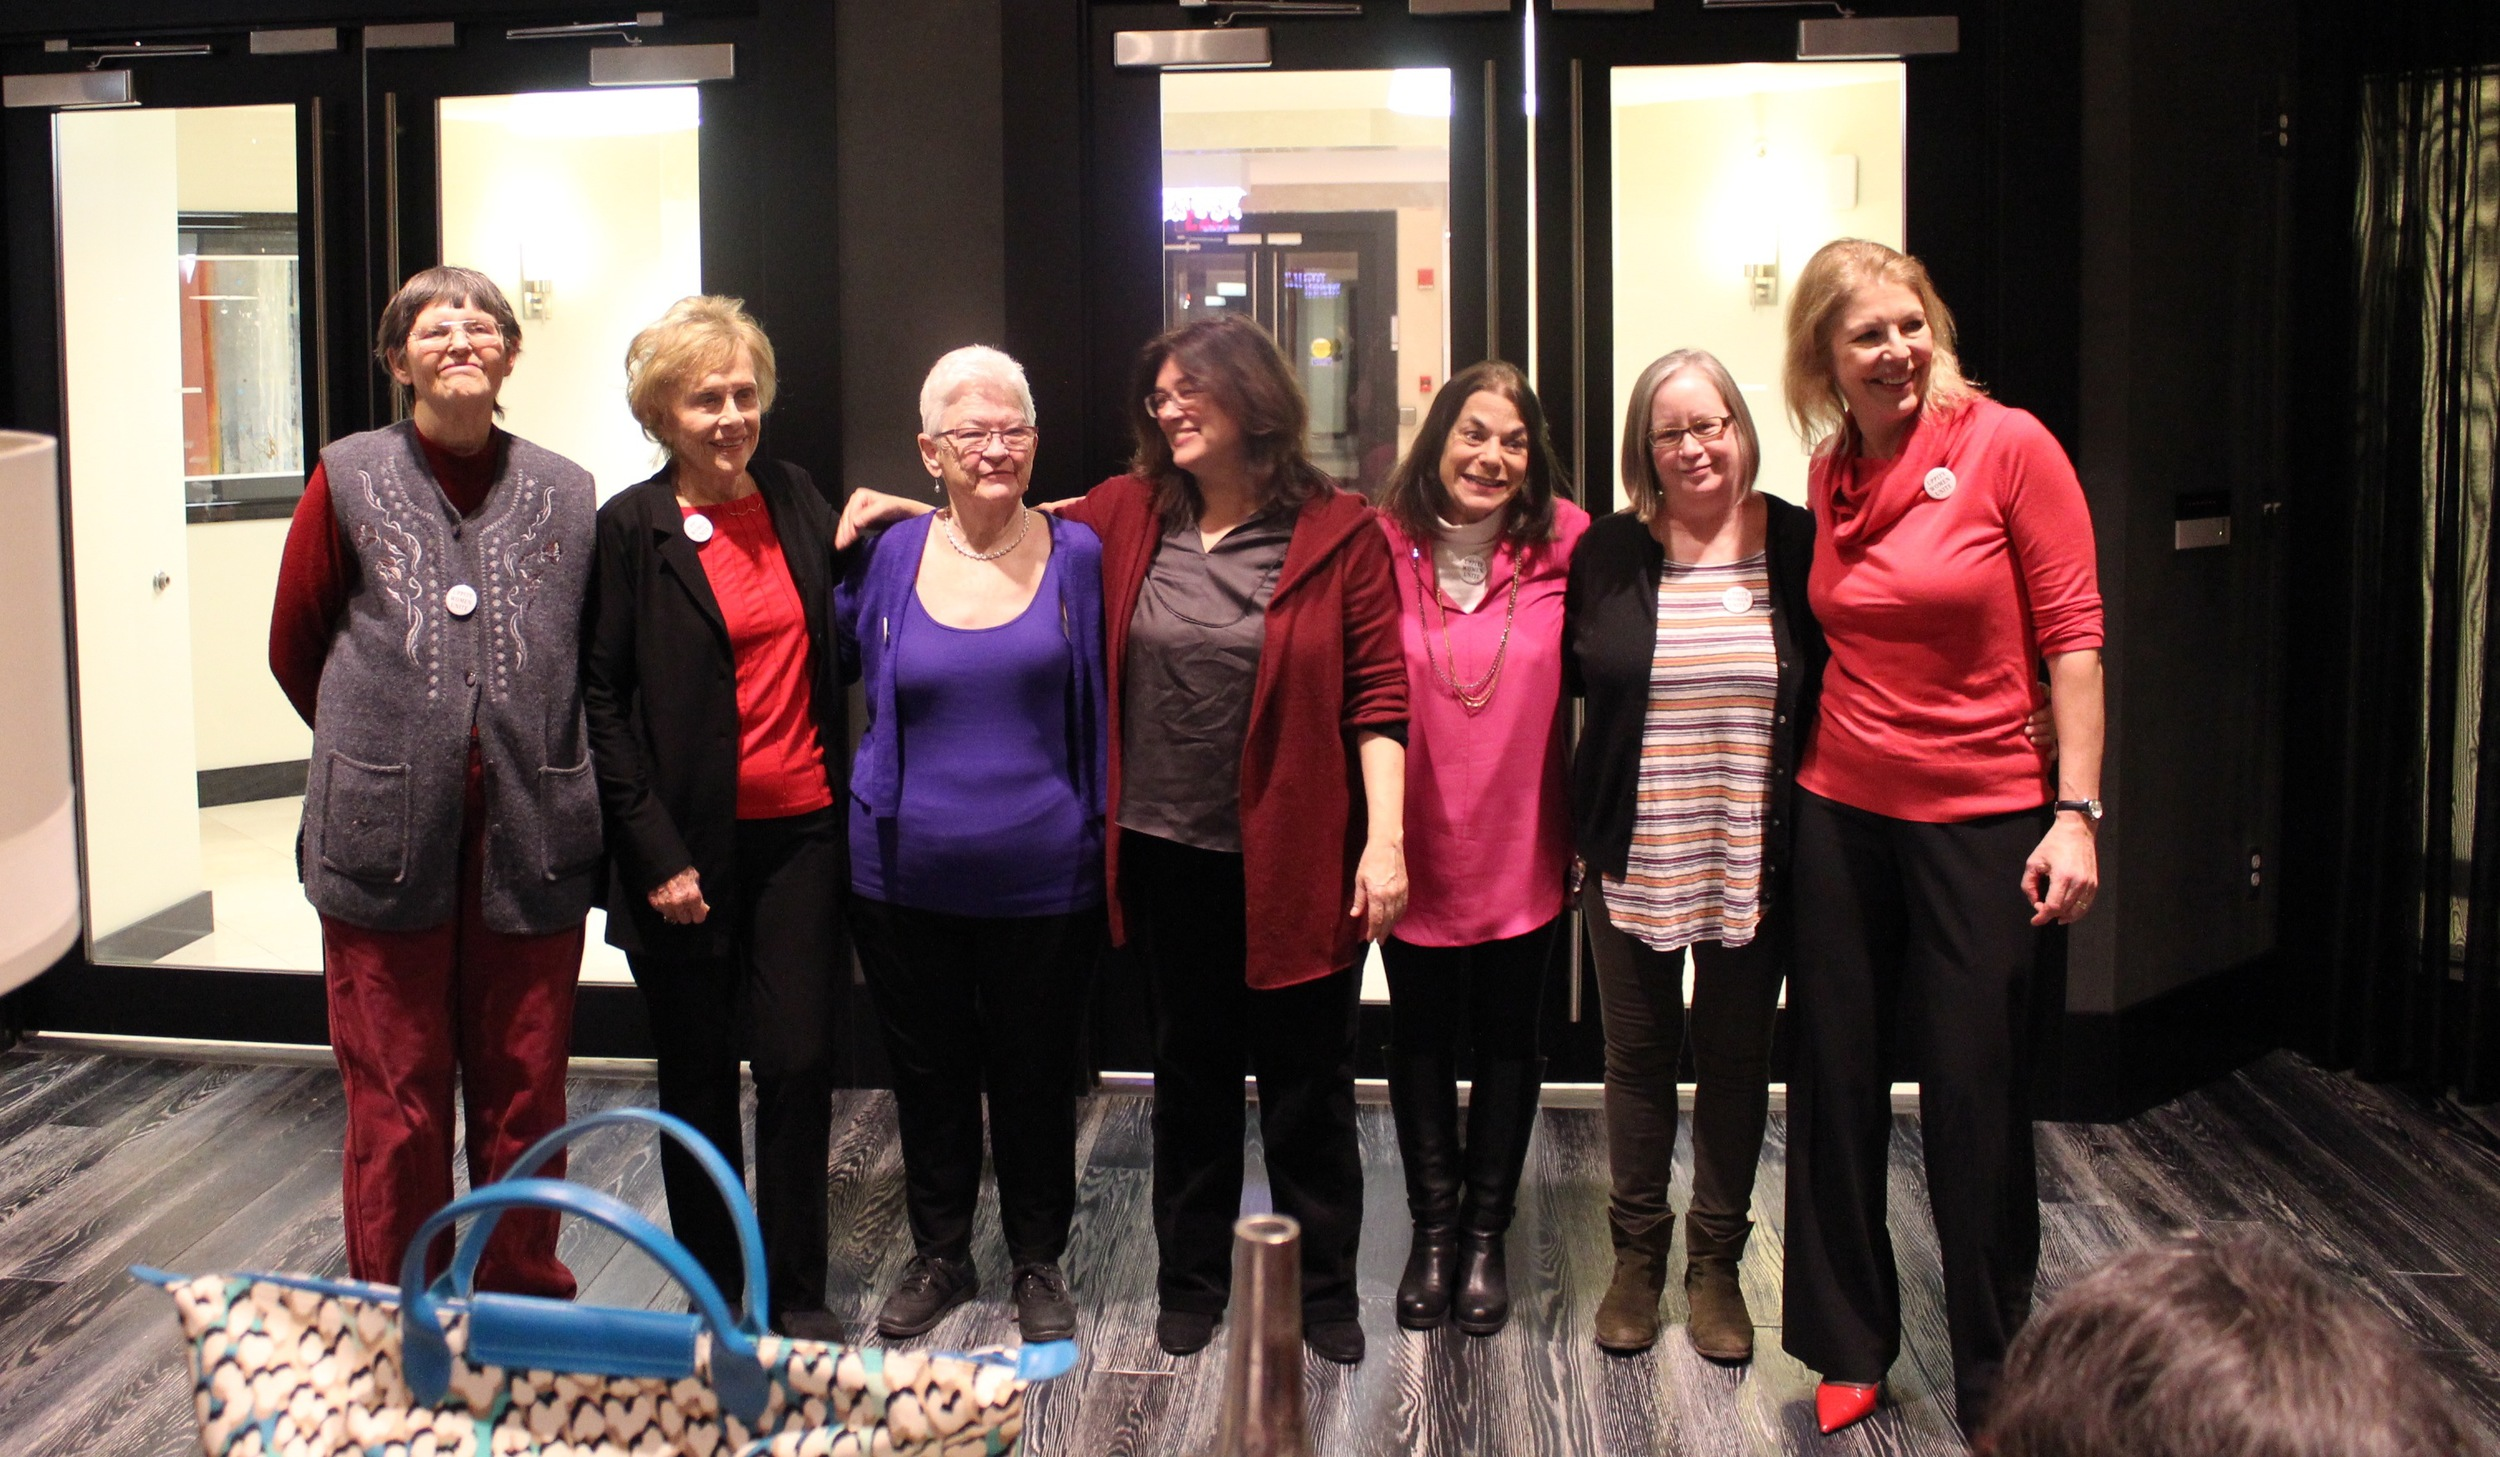 Marlene Sanders' daughter in law, Amy McIntosh and son Jeffrey Toobin kindly hosted a a get-together to celebrate our DC opening. Pictured: Jo Freeman, Marlene Sanders, Mary-Jean Collins, Director Mary Dore, Alice Wolfson, Producer/ Editor Nancy Kennedy and host, Amy McIntosh